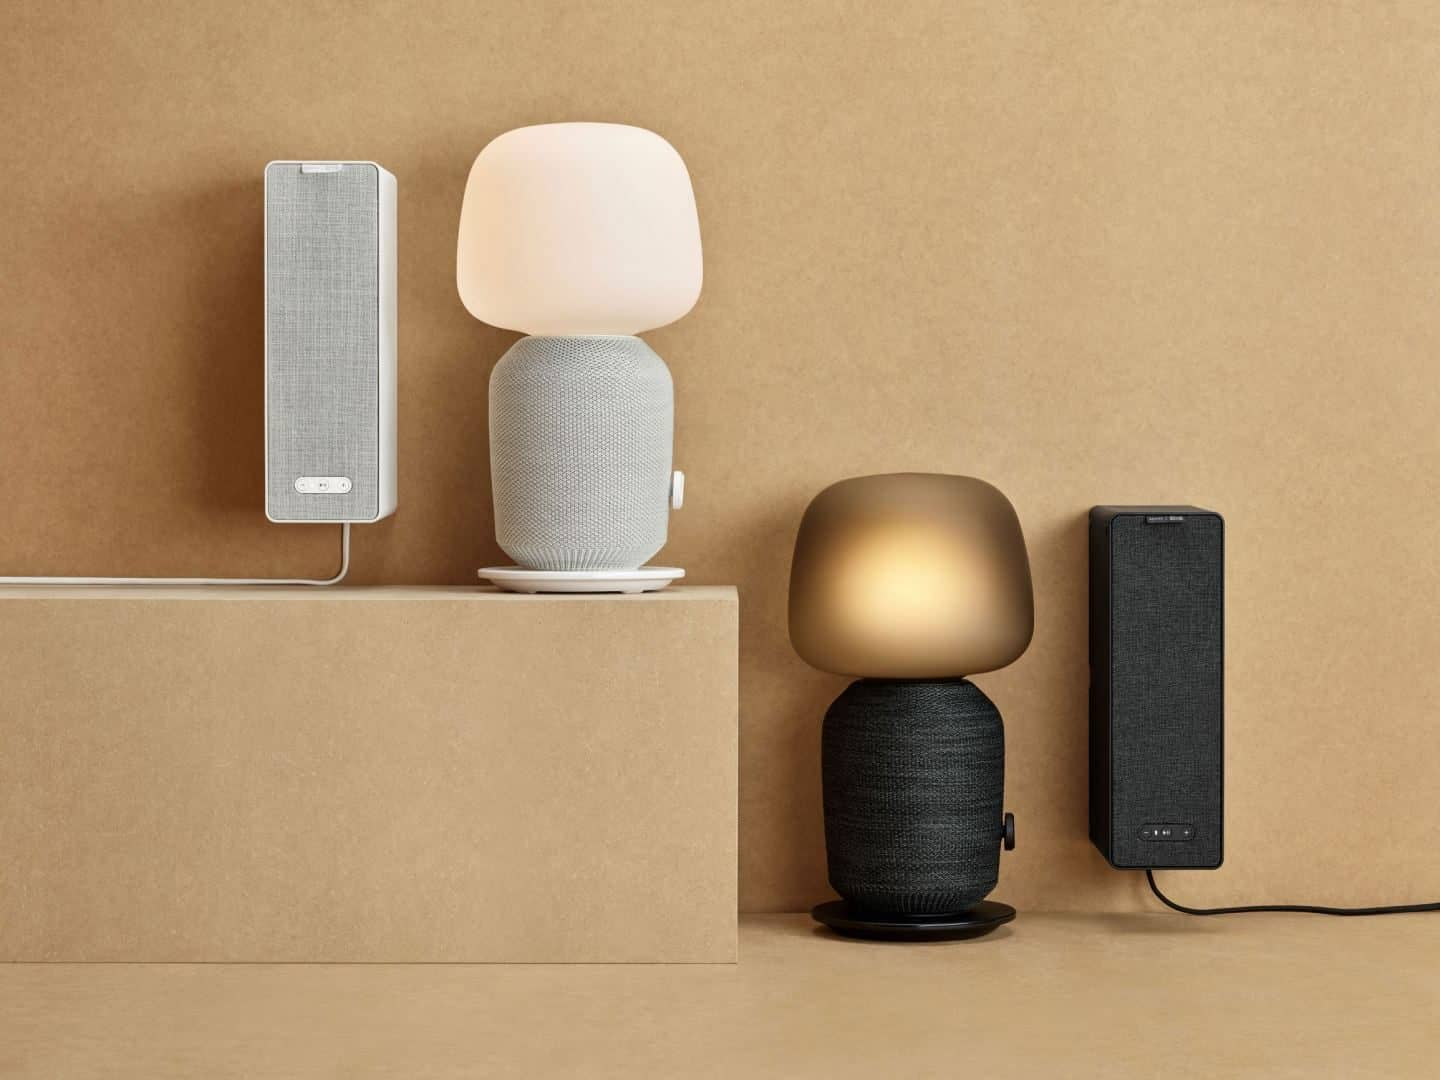 Symfonisk speakers are the result of a collaboration between IKEA and SONOS